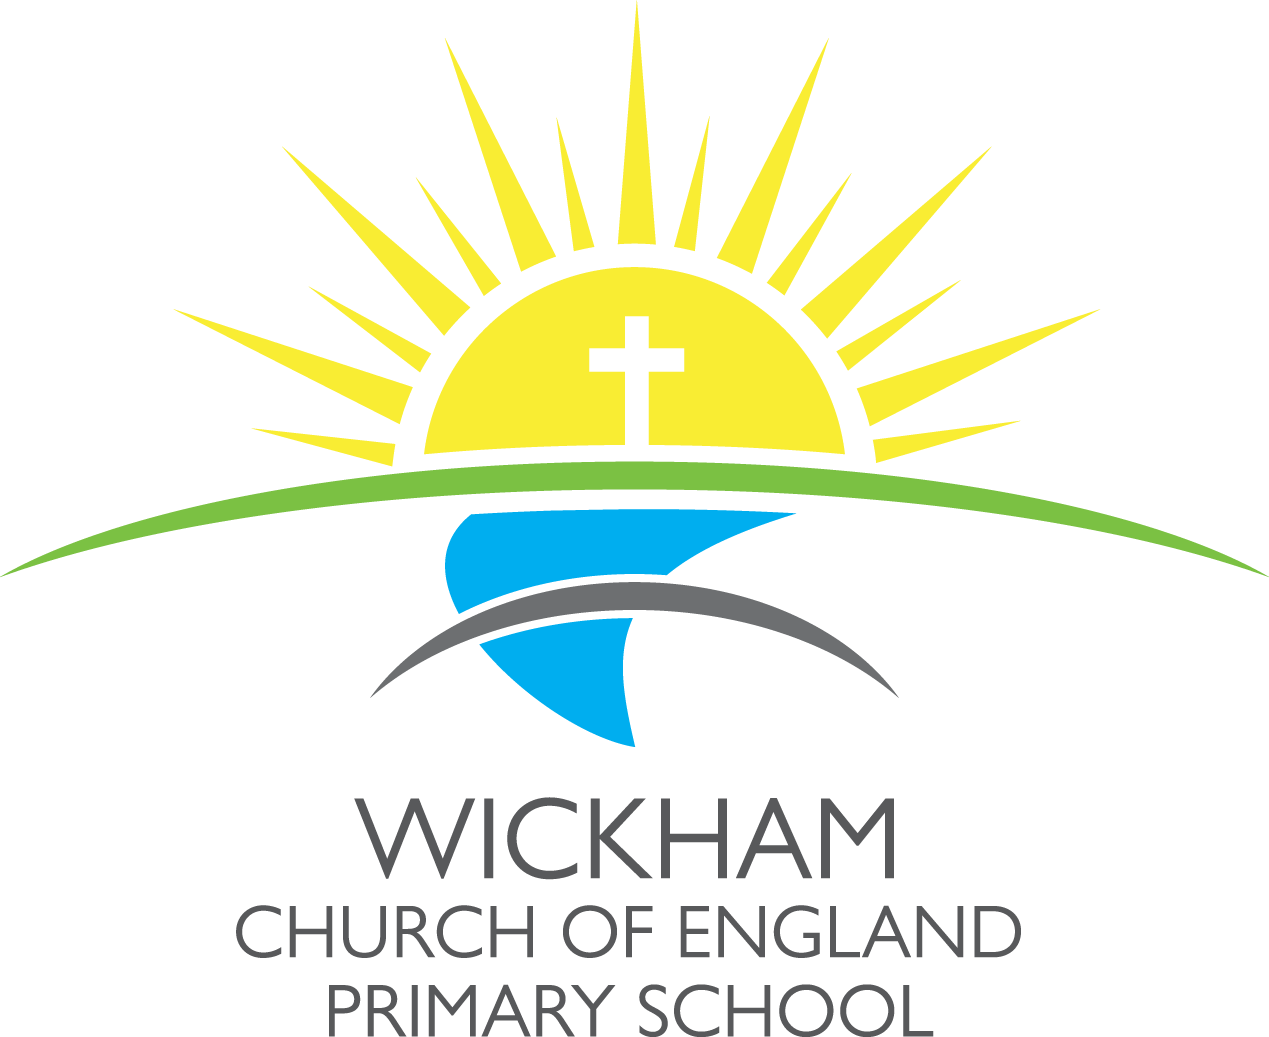 Wickham Church Of England Primary School